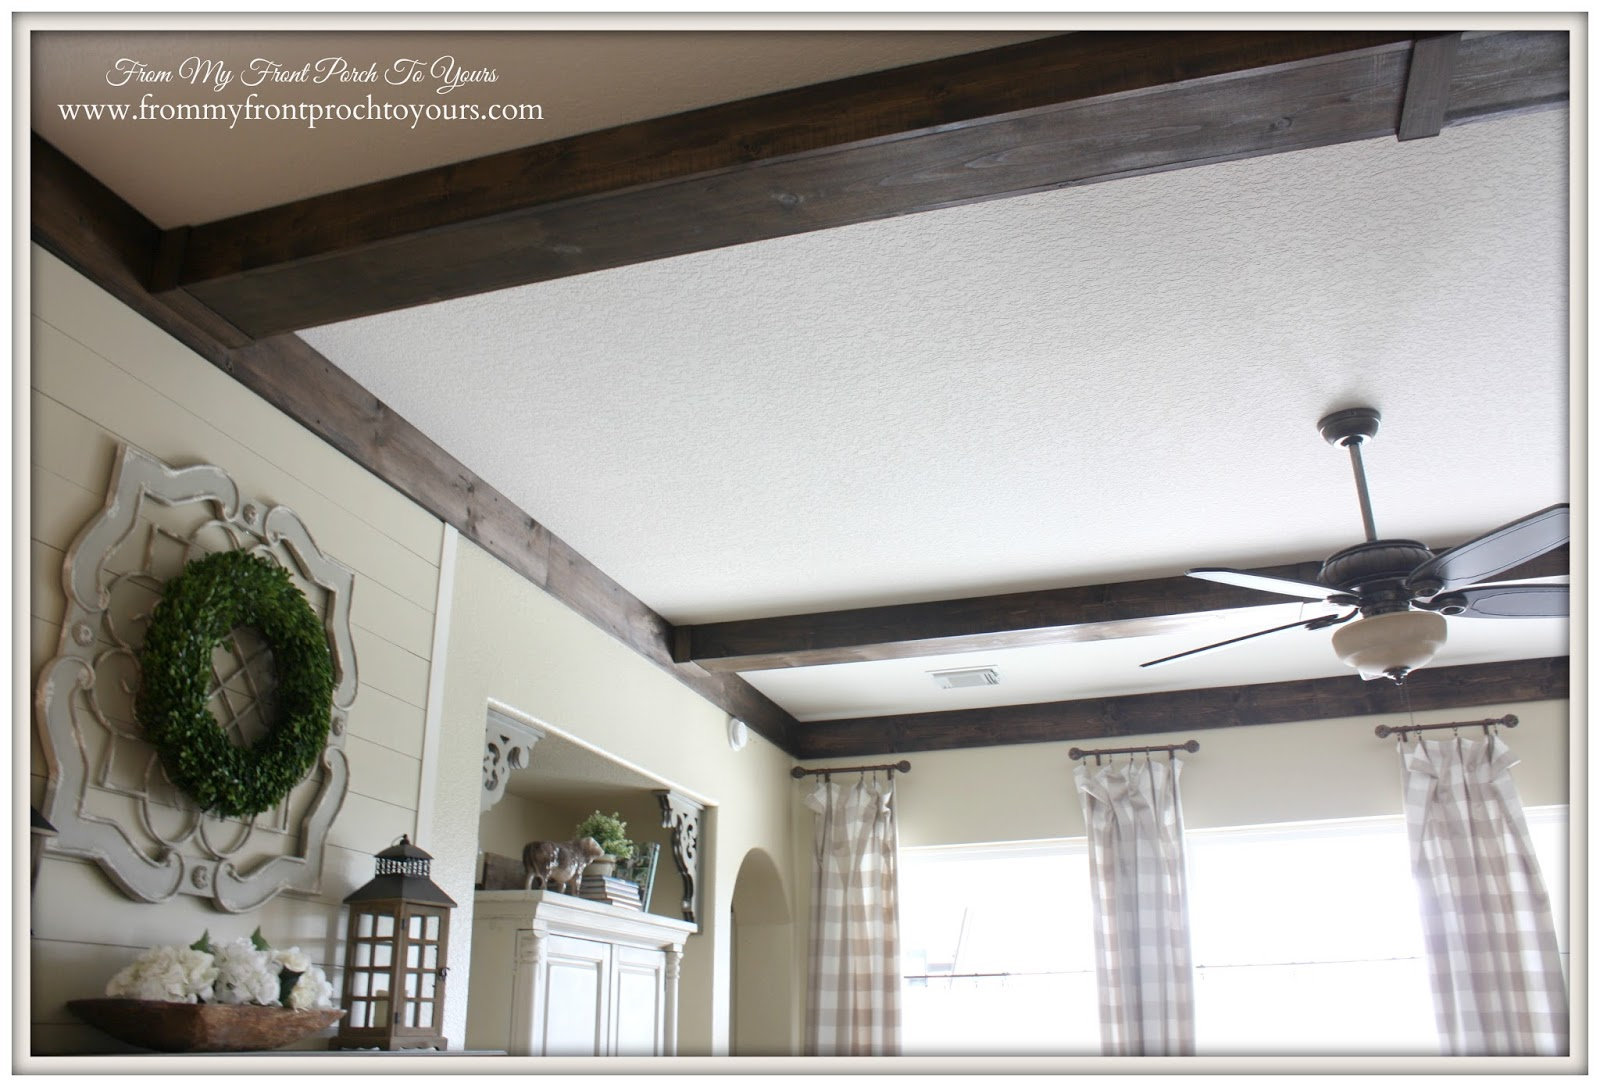 DIY Wood Beams perfect for adding a rustic french country feel to a space.- From My Front Porch To Yours